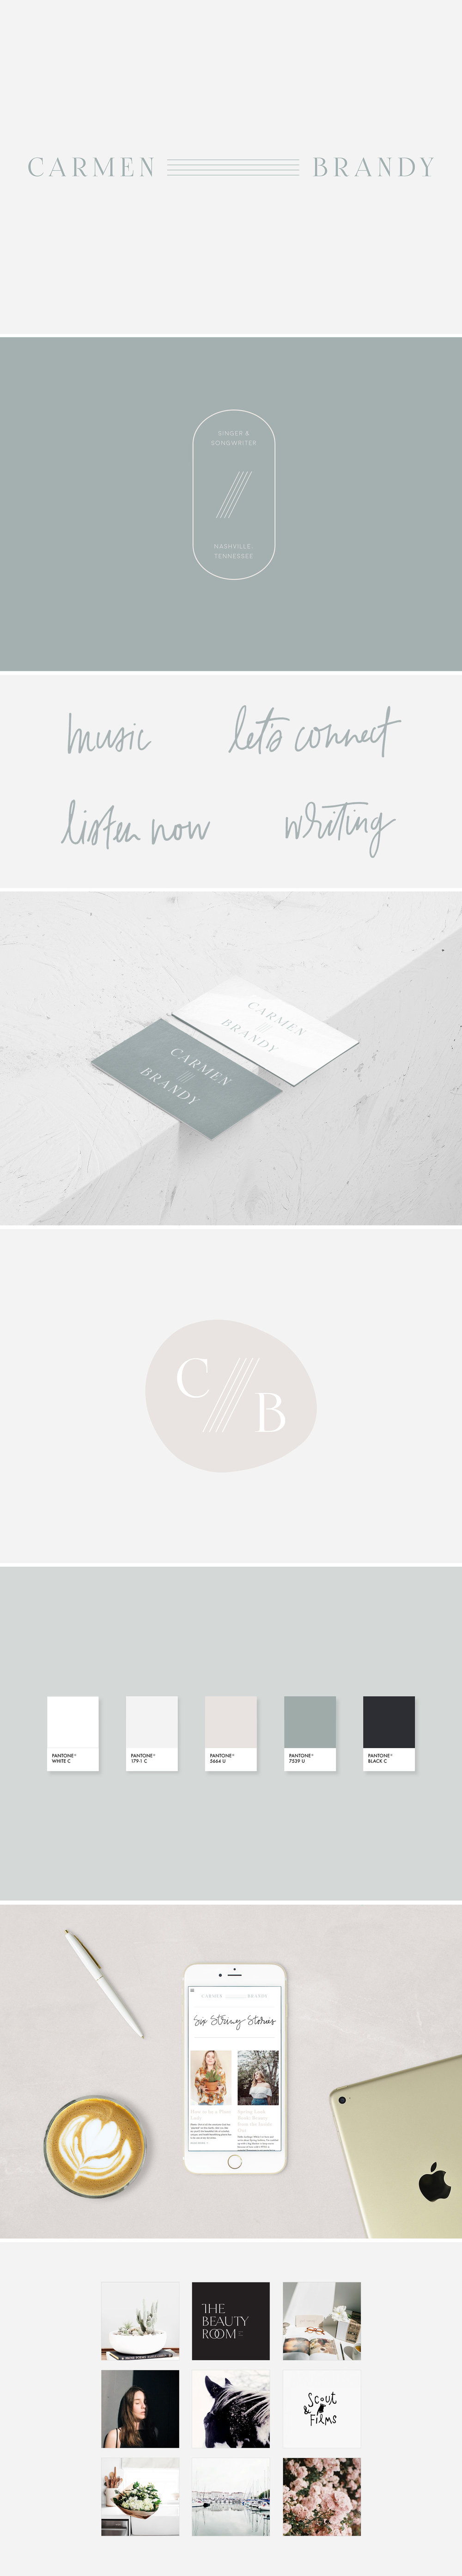 Carmen Brandy | youthful, bohemian, raw, authentic branding | Reux Design Co.